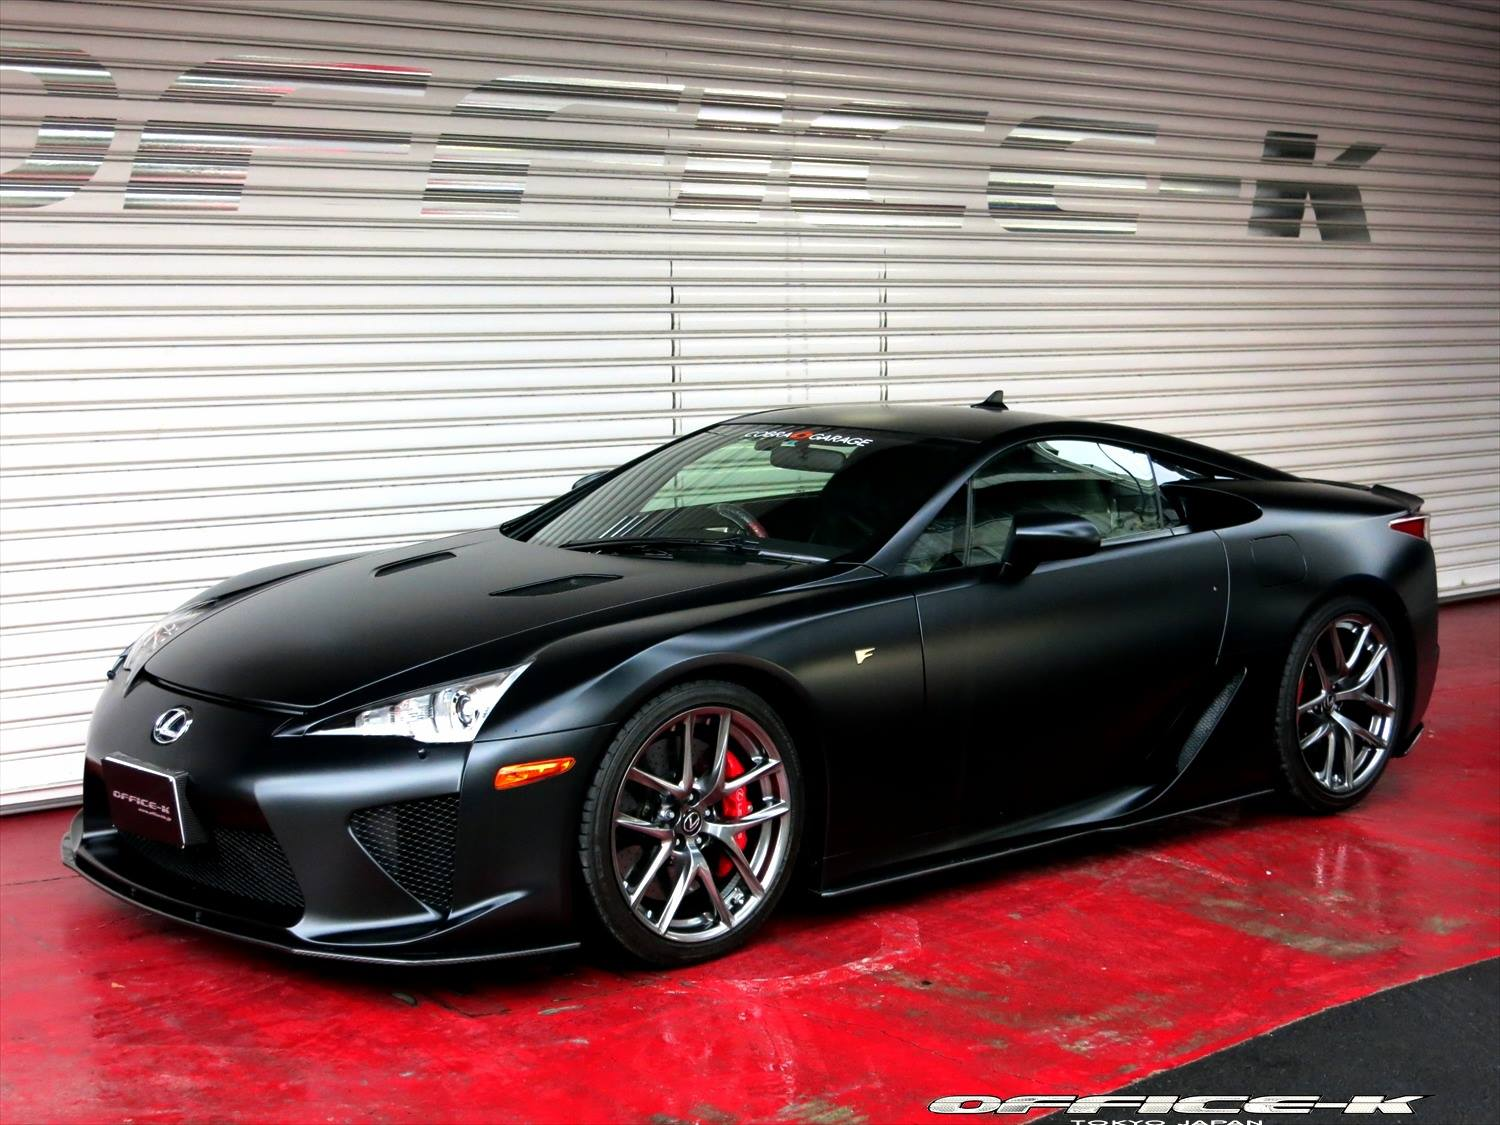 Lexus Ct200H F Sport >> Matte Black Lexus LFA by Office-K [Video] - autoevolution